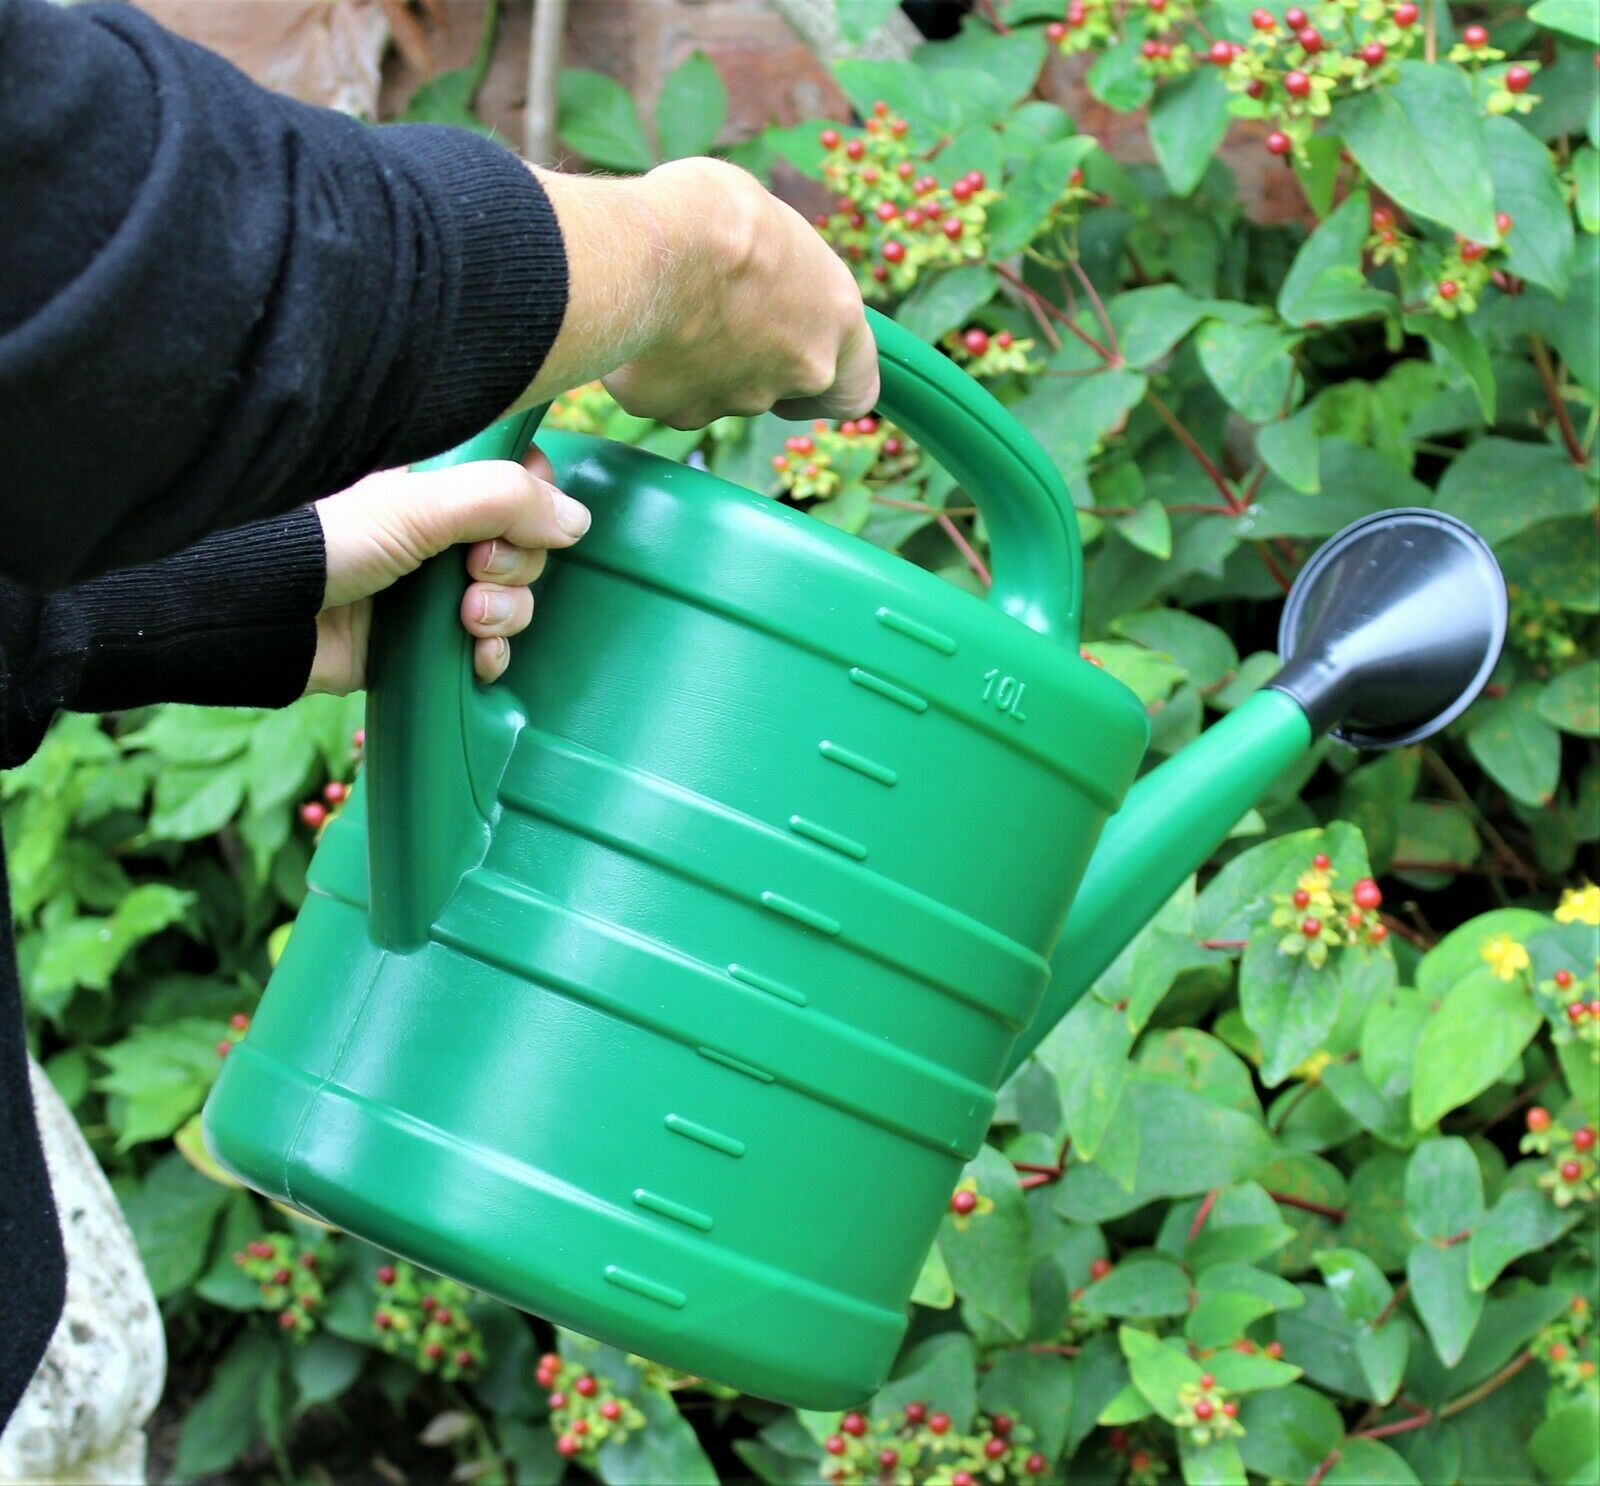 Watering Can With Rose Green 10 Litre 2 Gallons